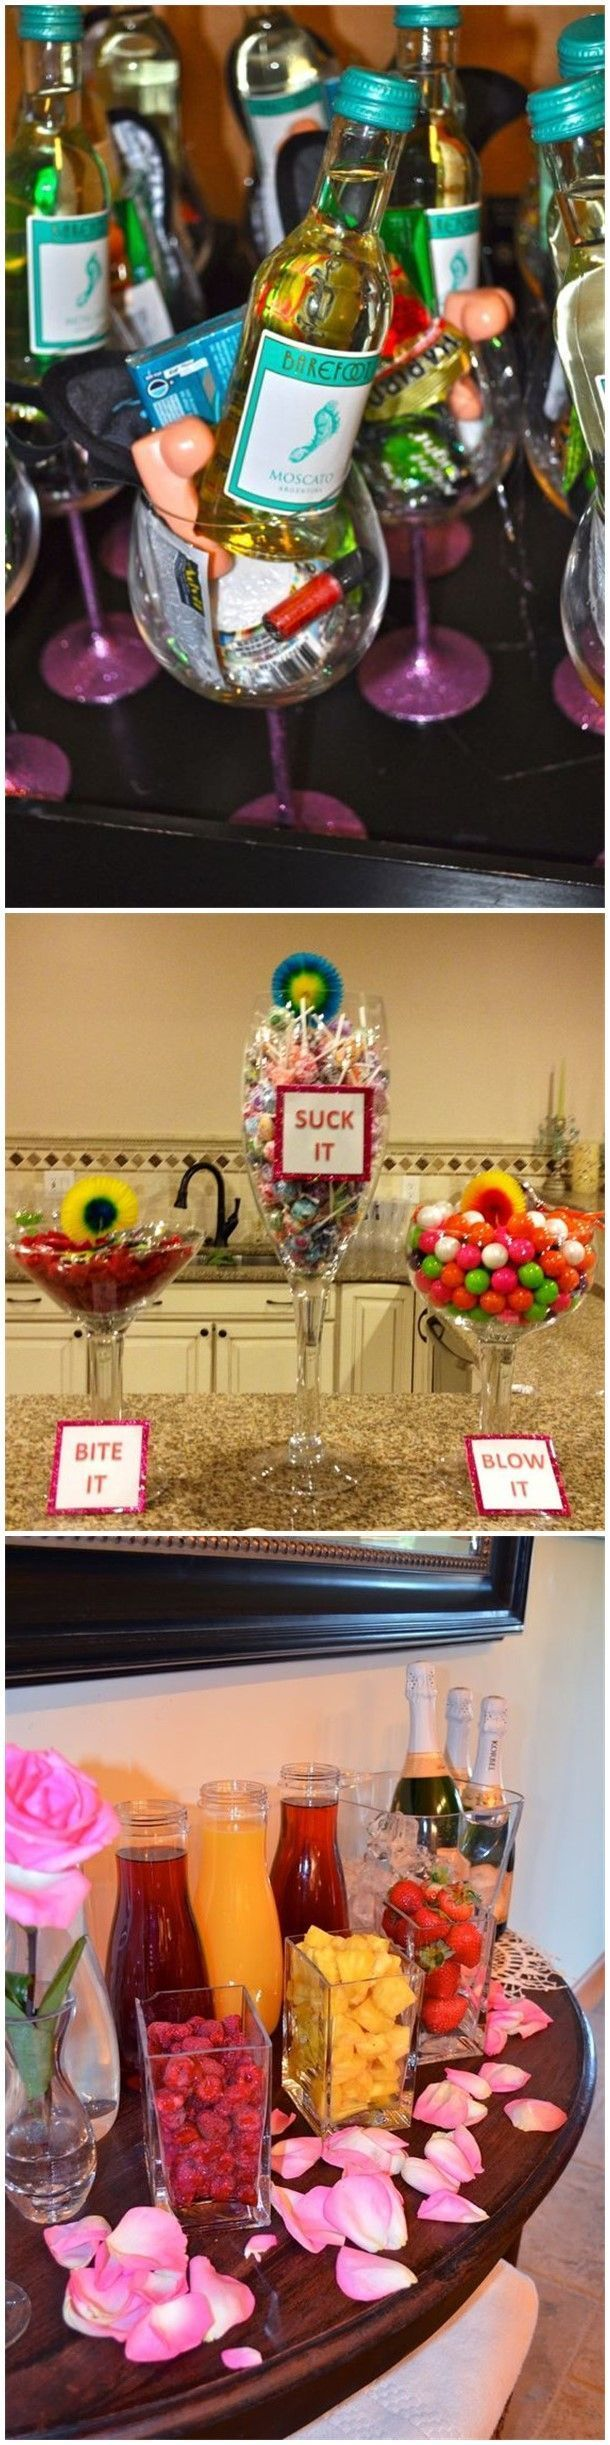 funny bachelorette party sayings for invitations%0A Best     Bachelorette parties ideas on Pinterest   Fun bachelorette party  ideas  Bacholerette party ideas and Bachelorette ideas